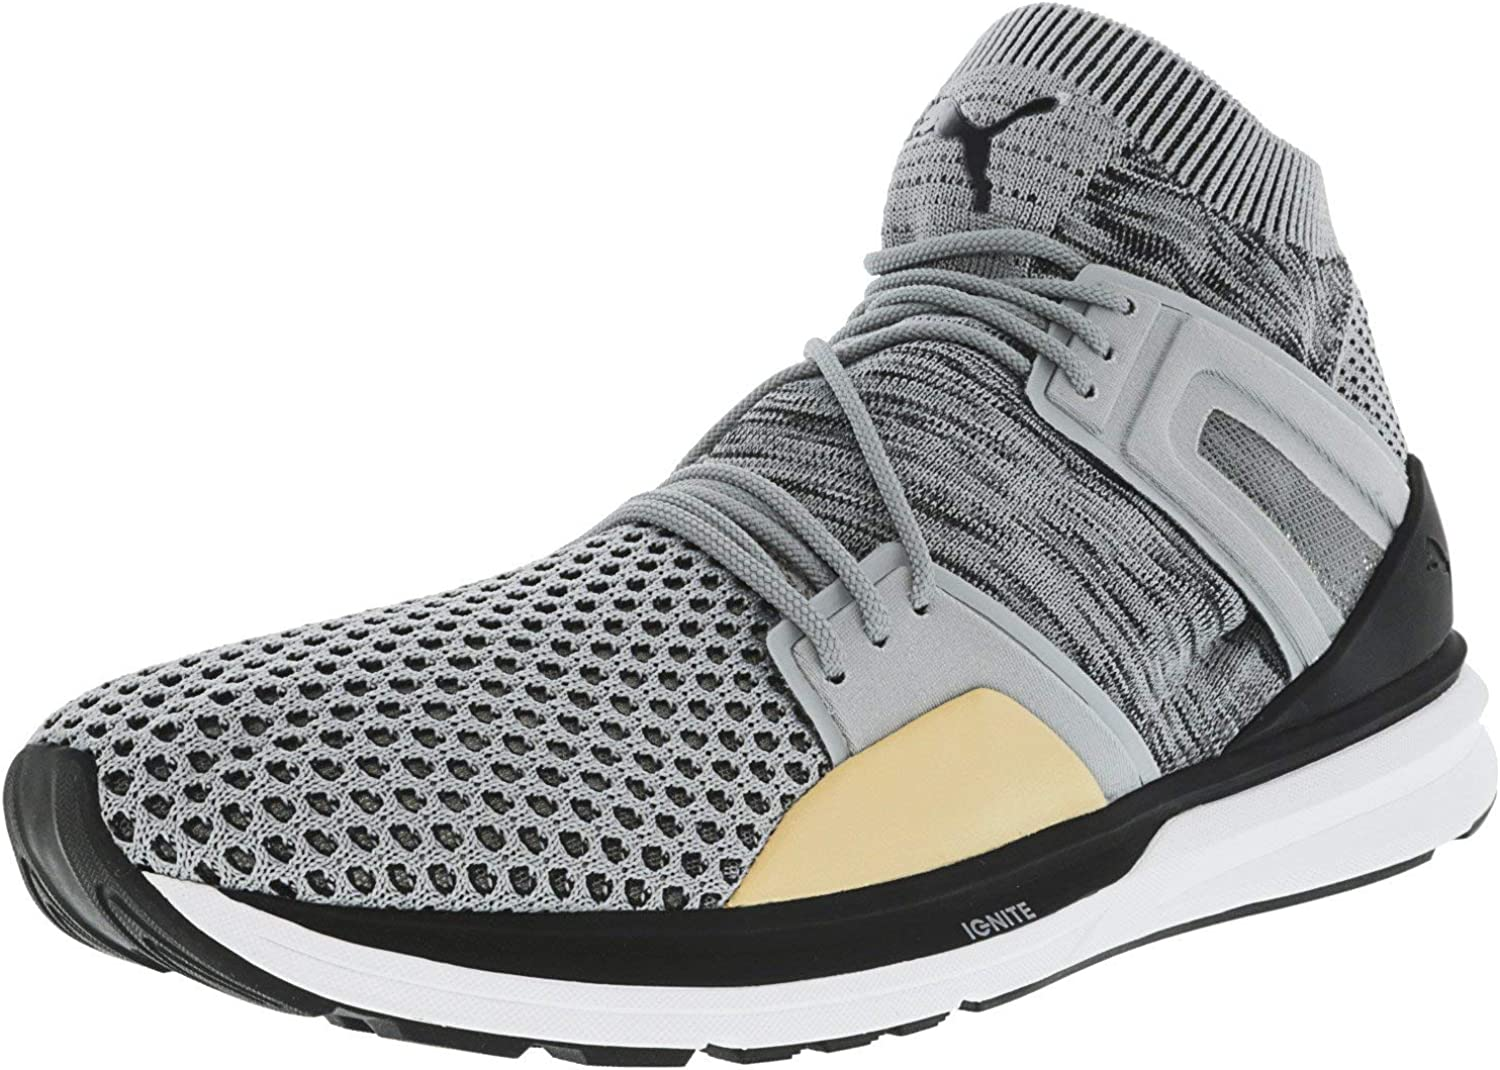 Puma Men's B.O.G. Limit Ankle-High Running shoes